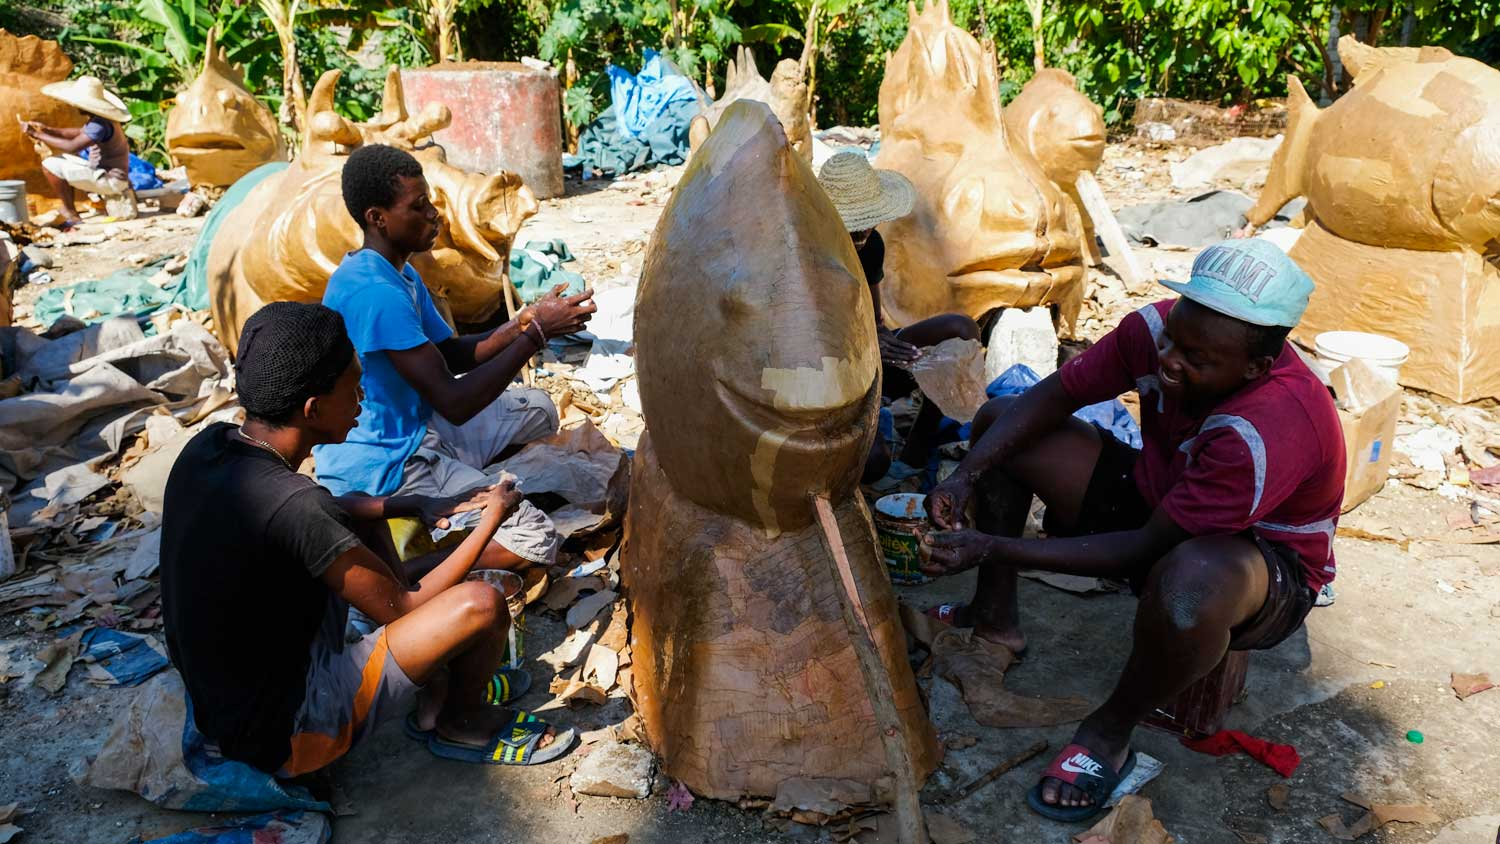 Artists in Jacmel, Haiti, working on paper mâché costumes